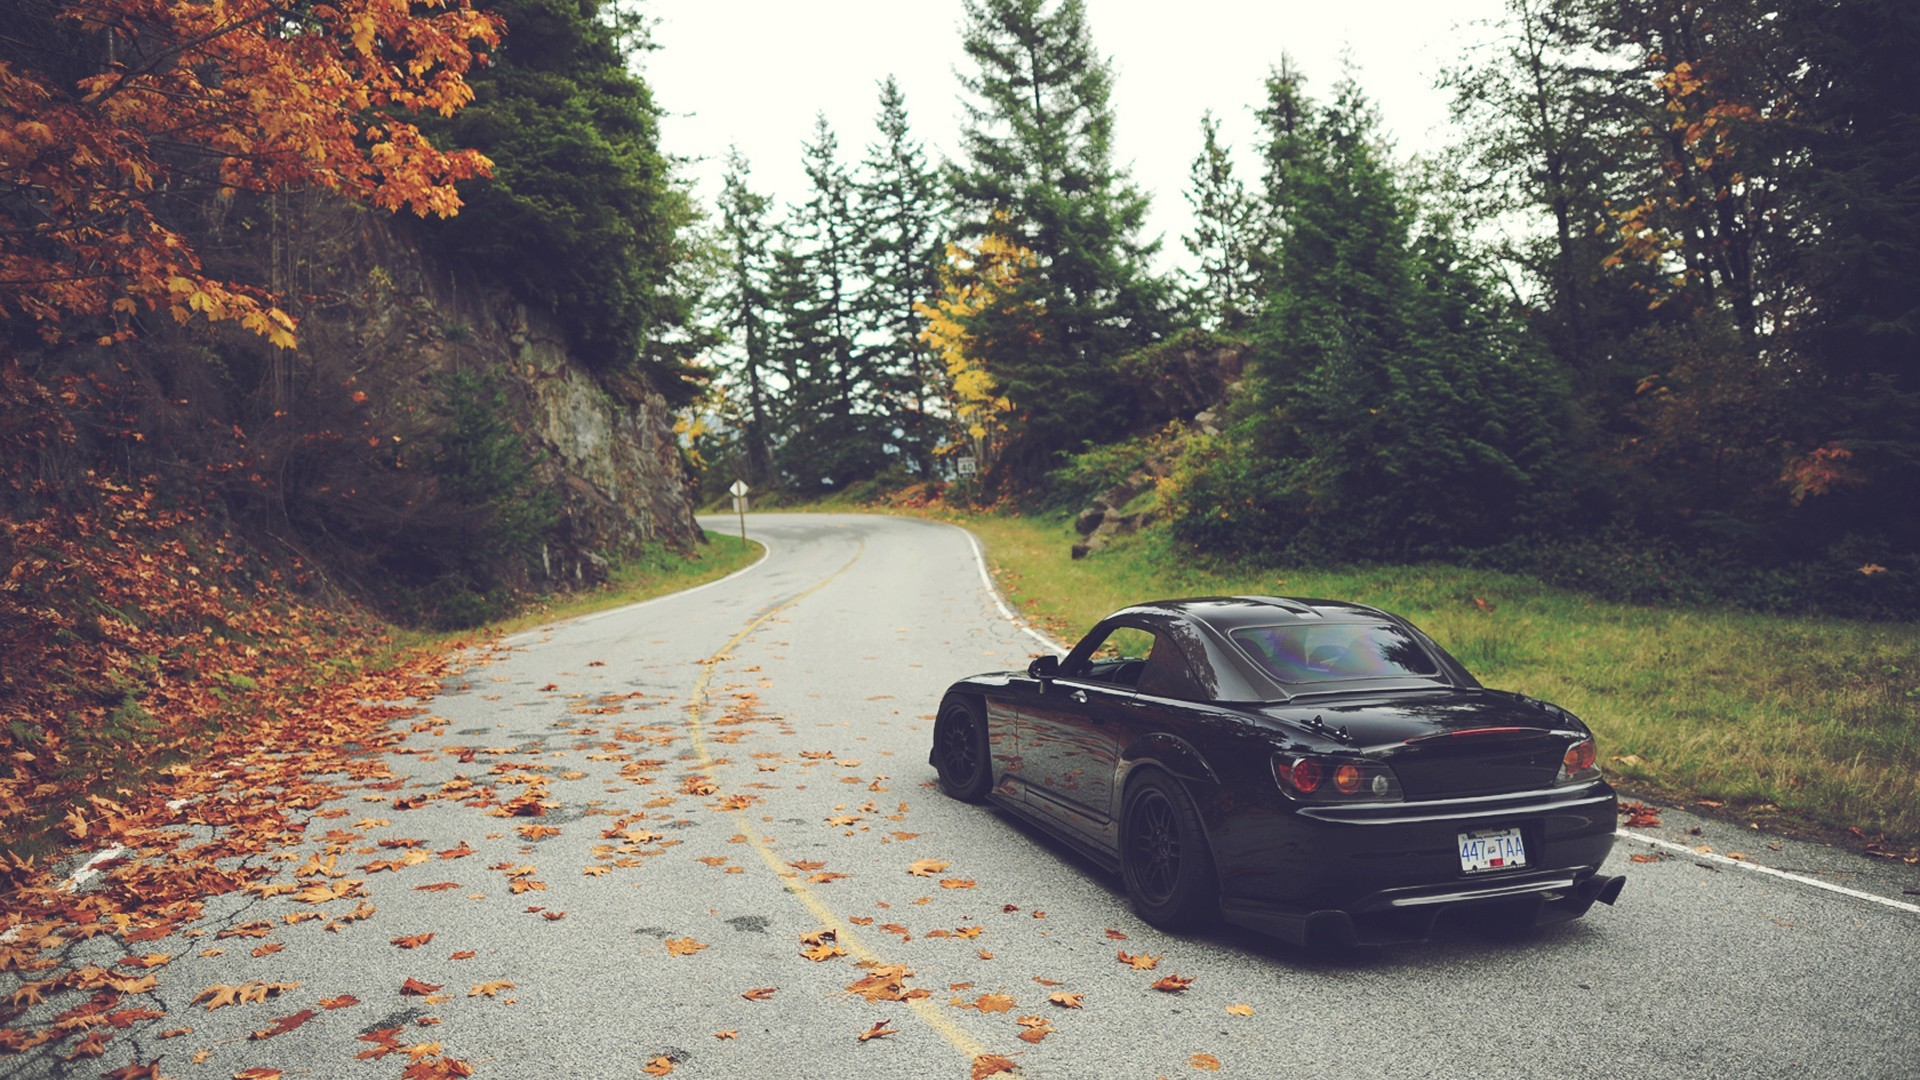 Honda S2000, HD Cars, 4k Wallpapers, Images, Backgrounds